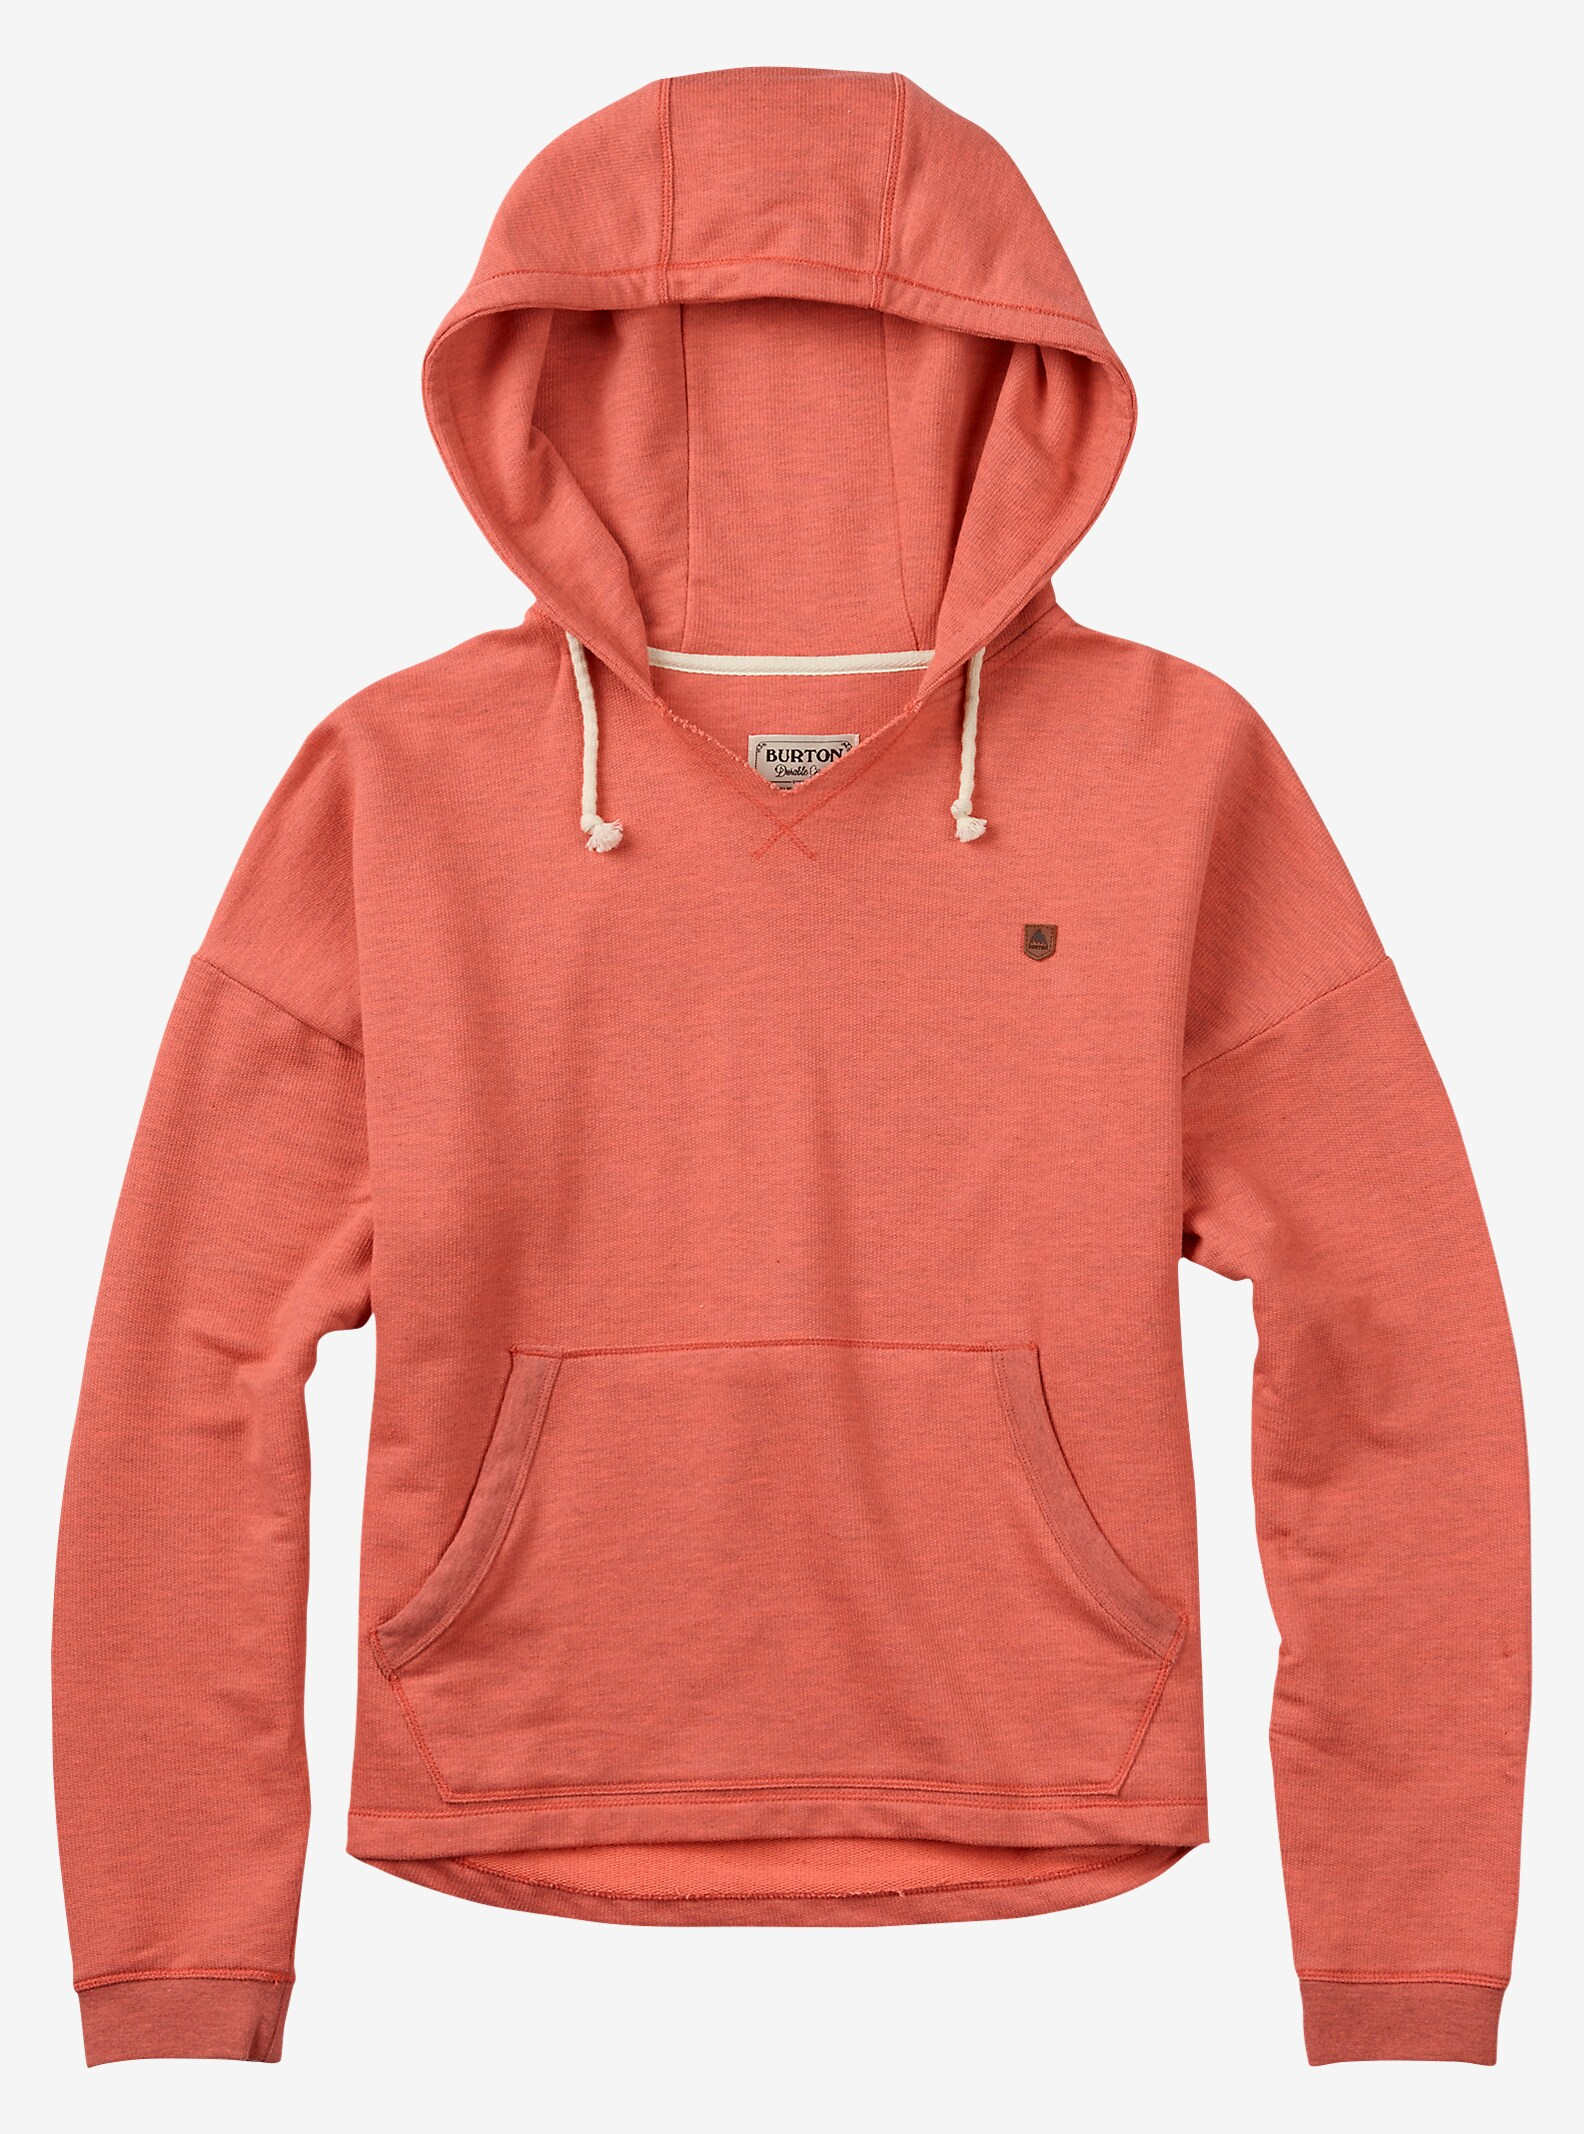 Burton Favorite Pullover Hoodie shown in Sashimi Heather